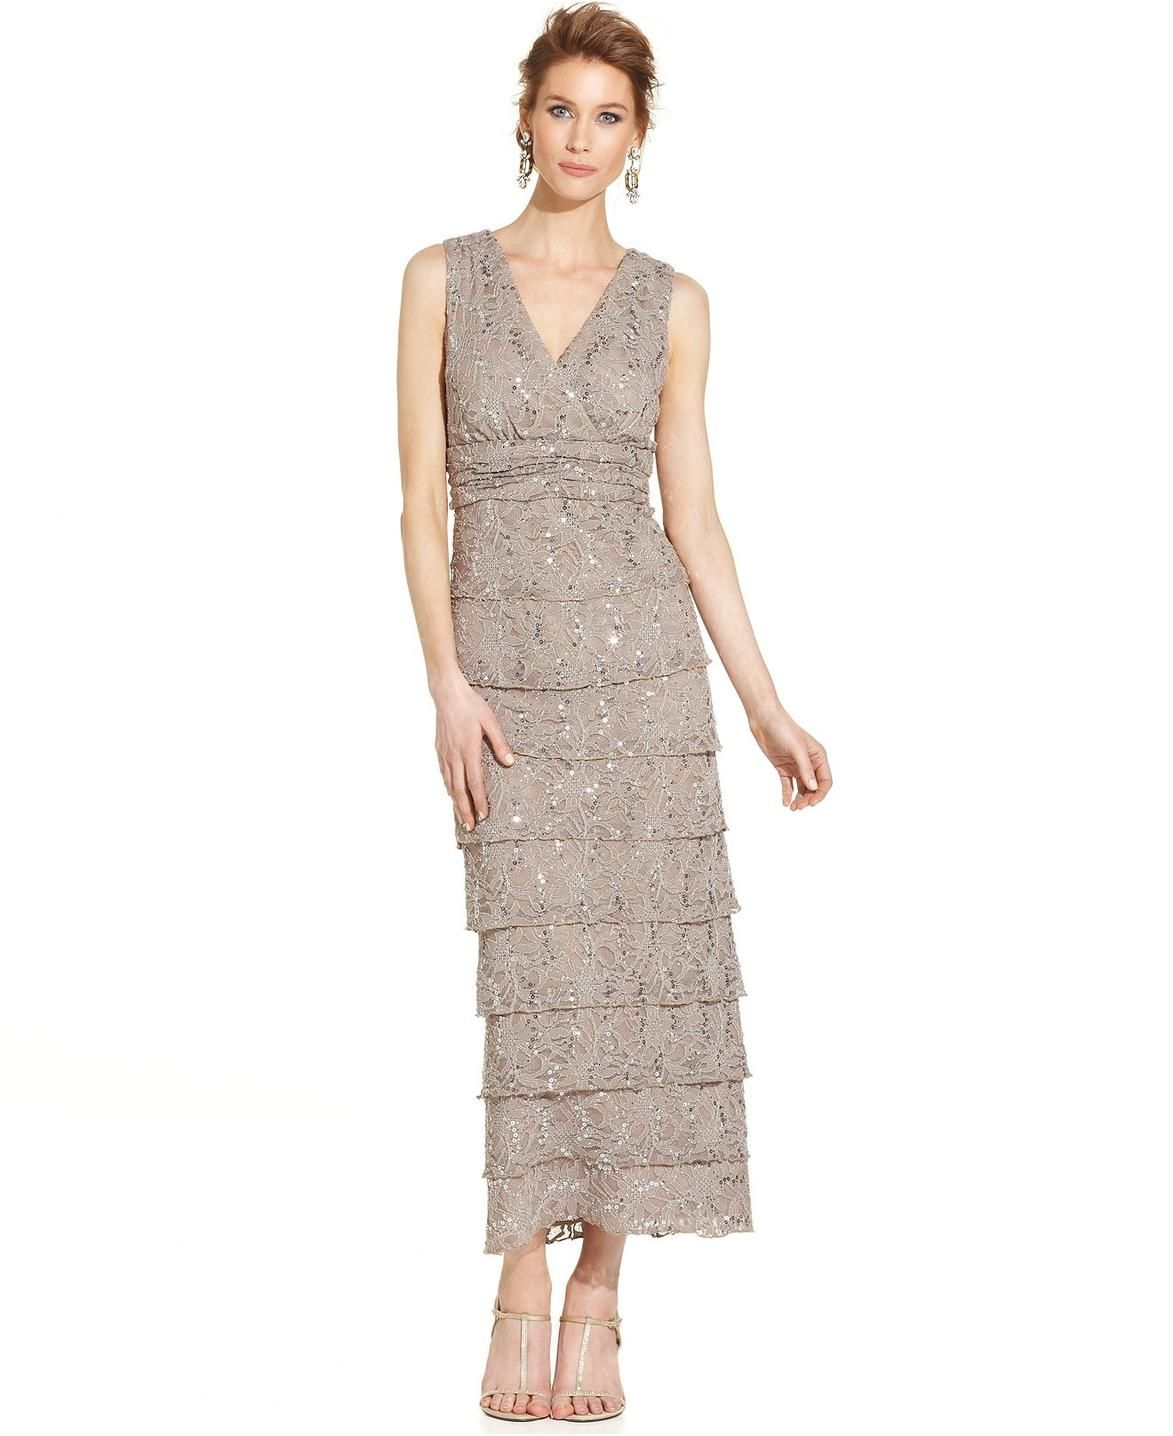 R&M Richards Sleeveless Sequin-Lace Tiered Dress http://picvpic ...